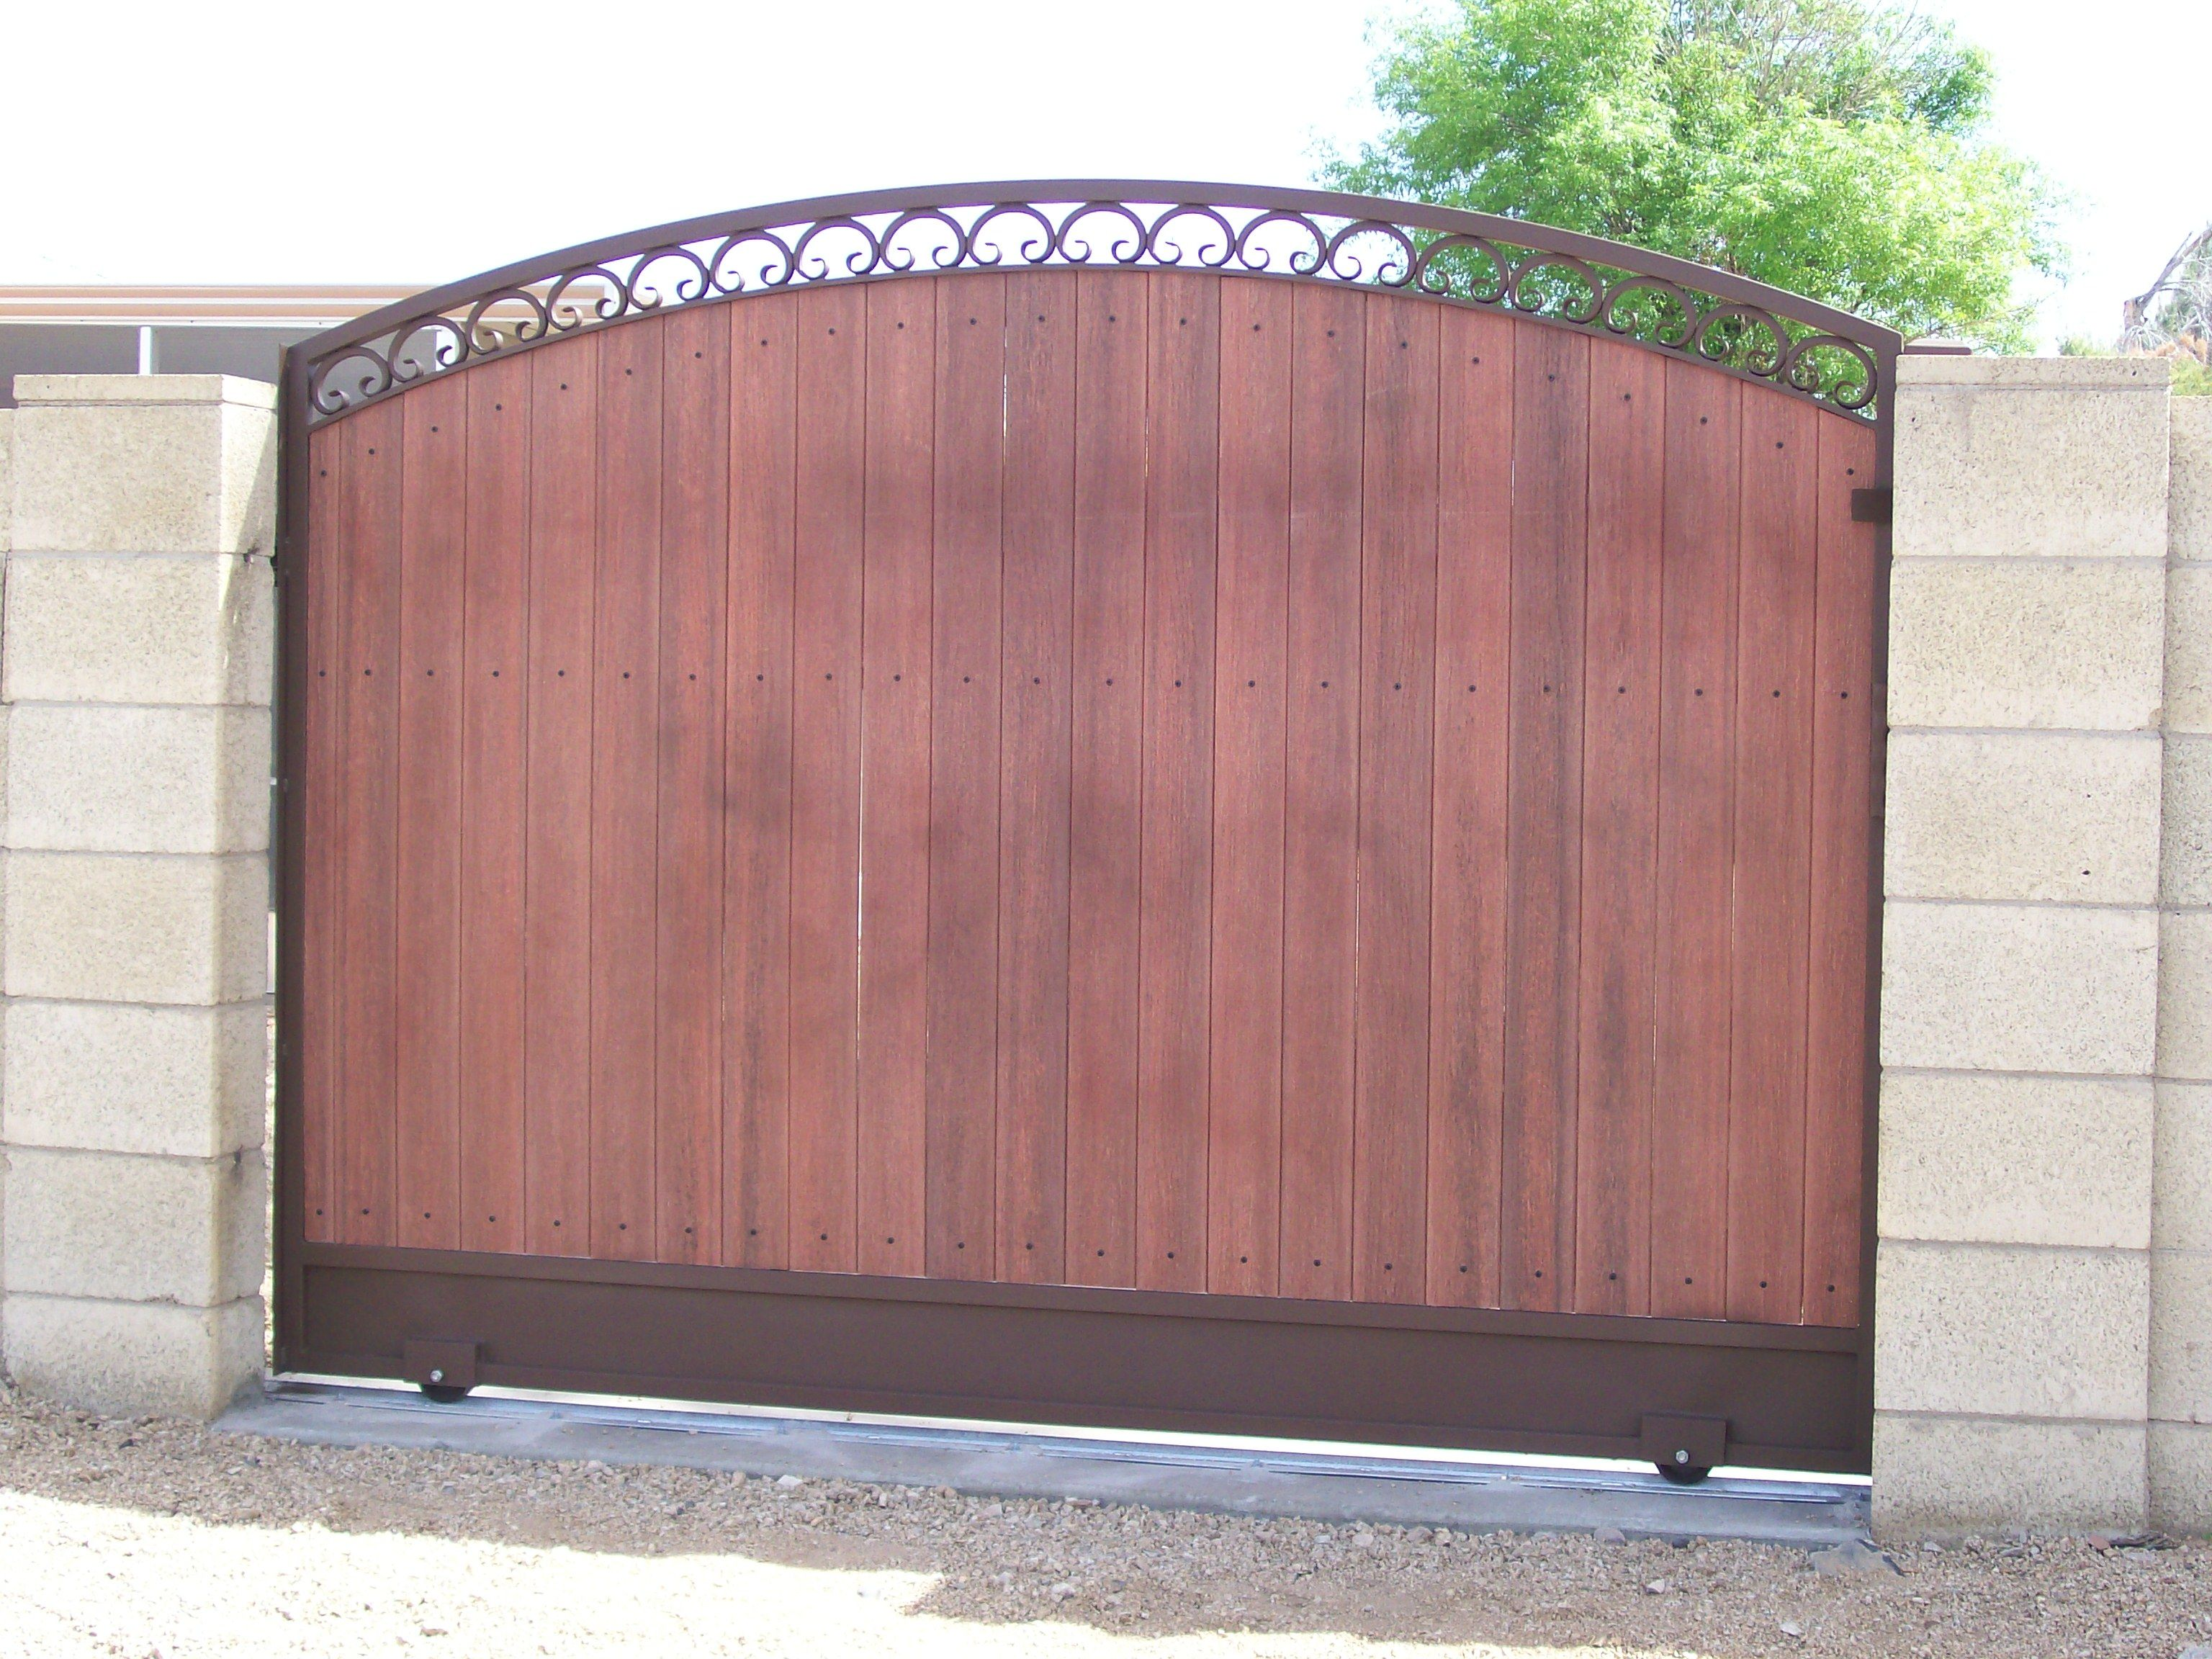 Galvanized steel frame drive gate fence dallas wood gate - Design Modern Gate Design Iron Gate Railings Front Door New Doors